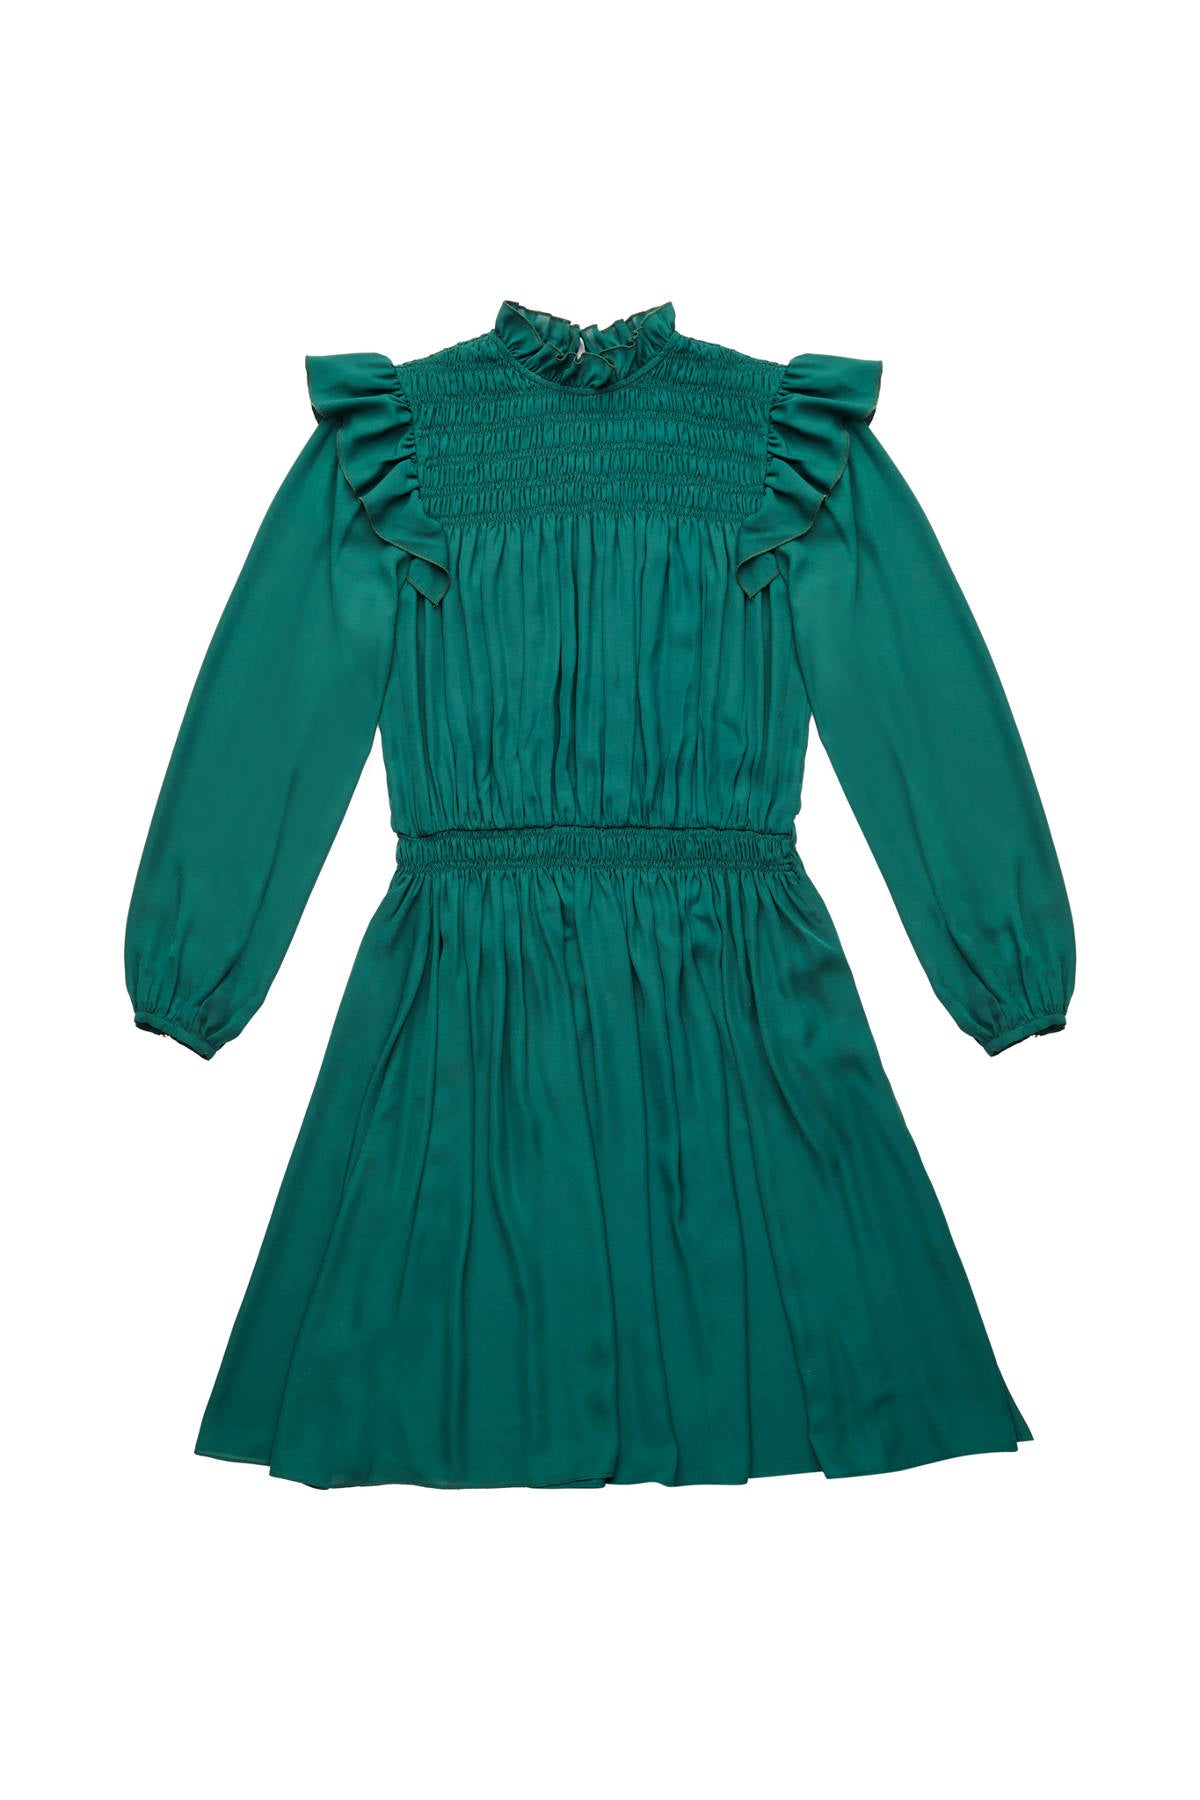 Zaikamoya Green Smocked Dress